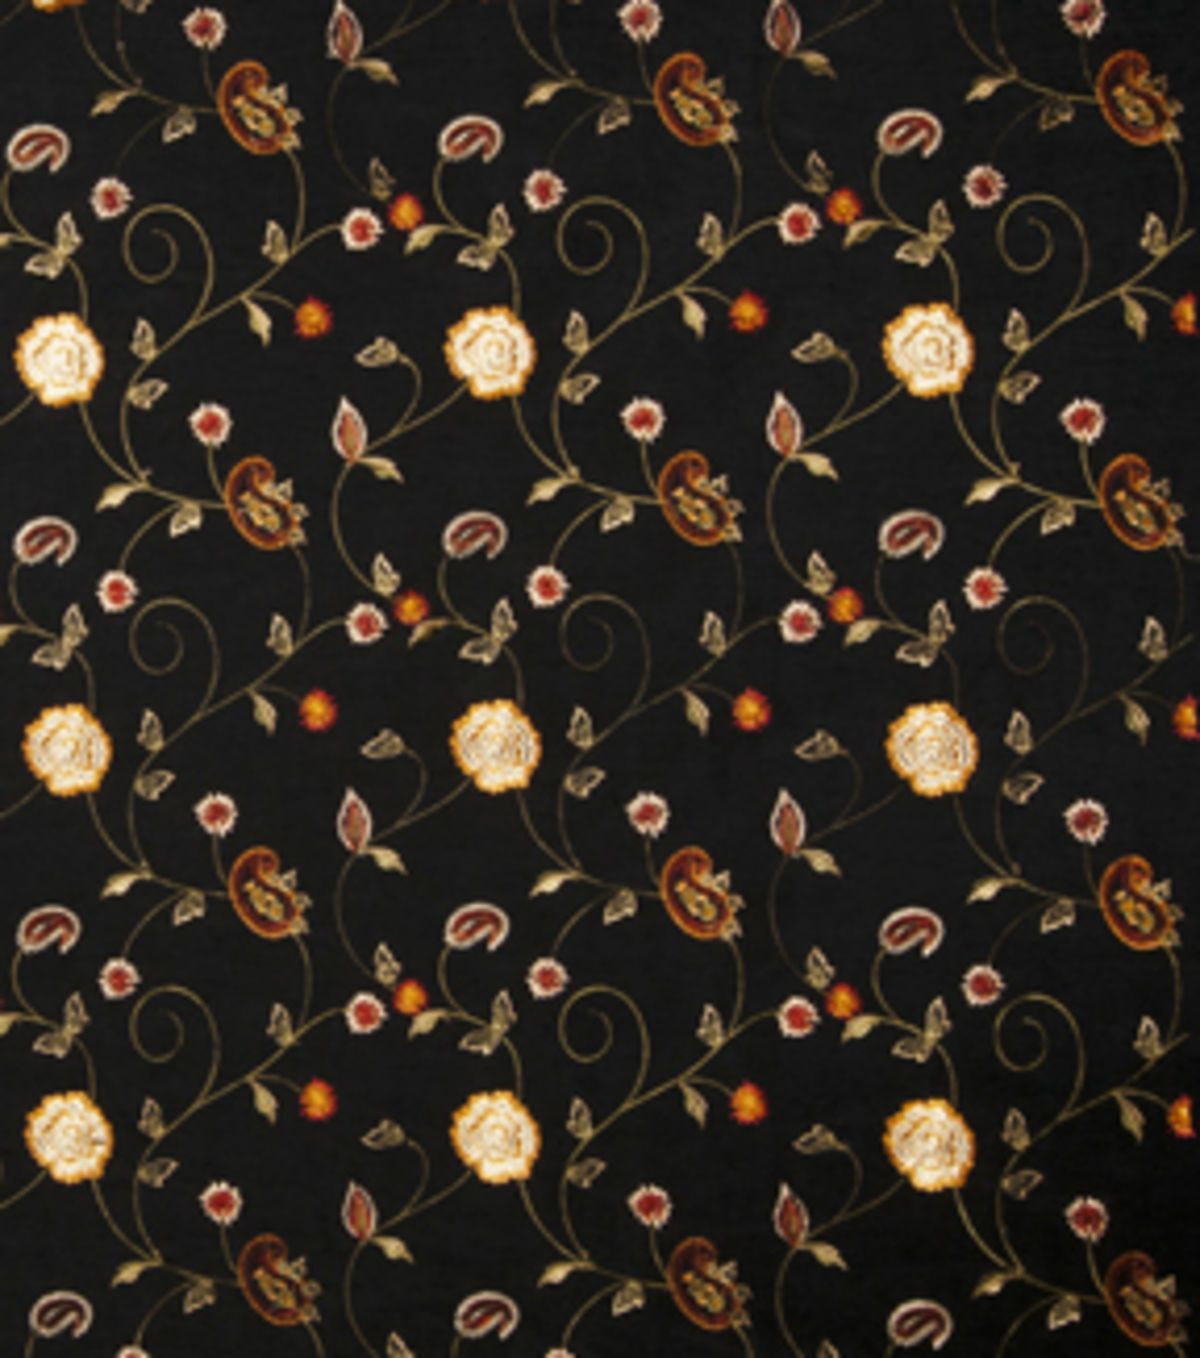 home decor print fabric-eaton square dynamic-black floral